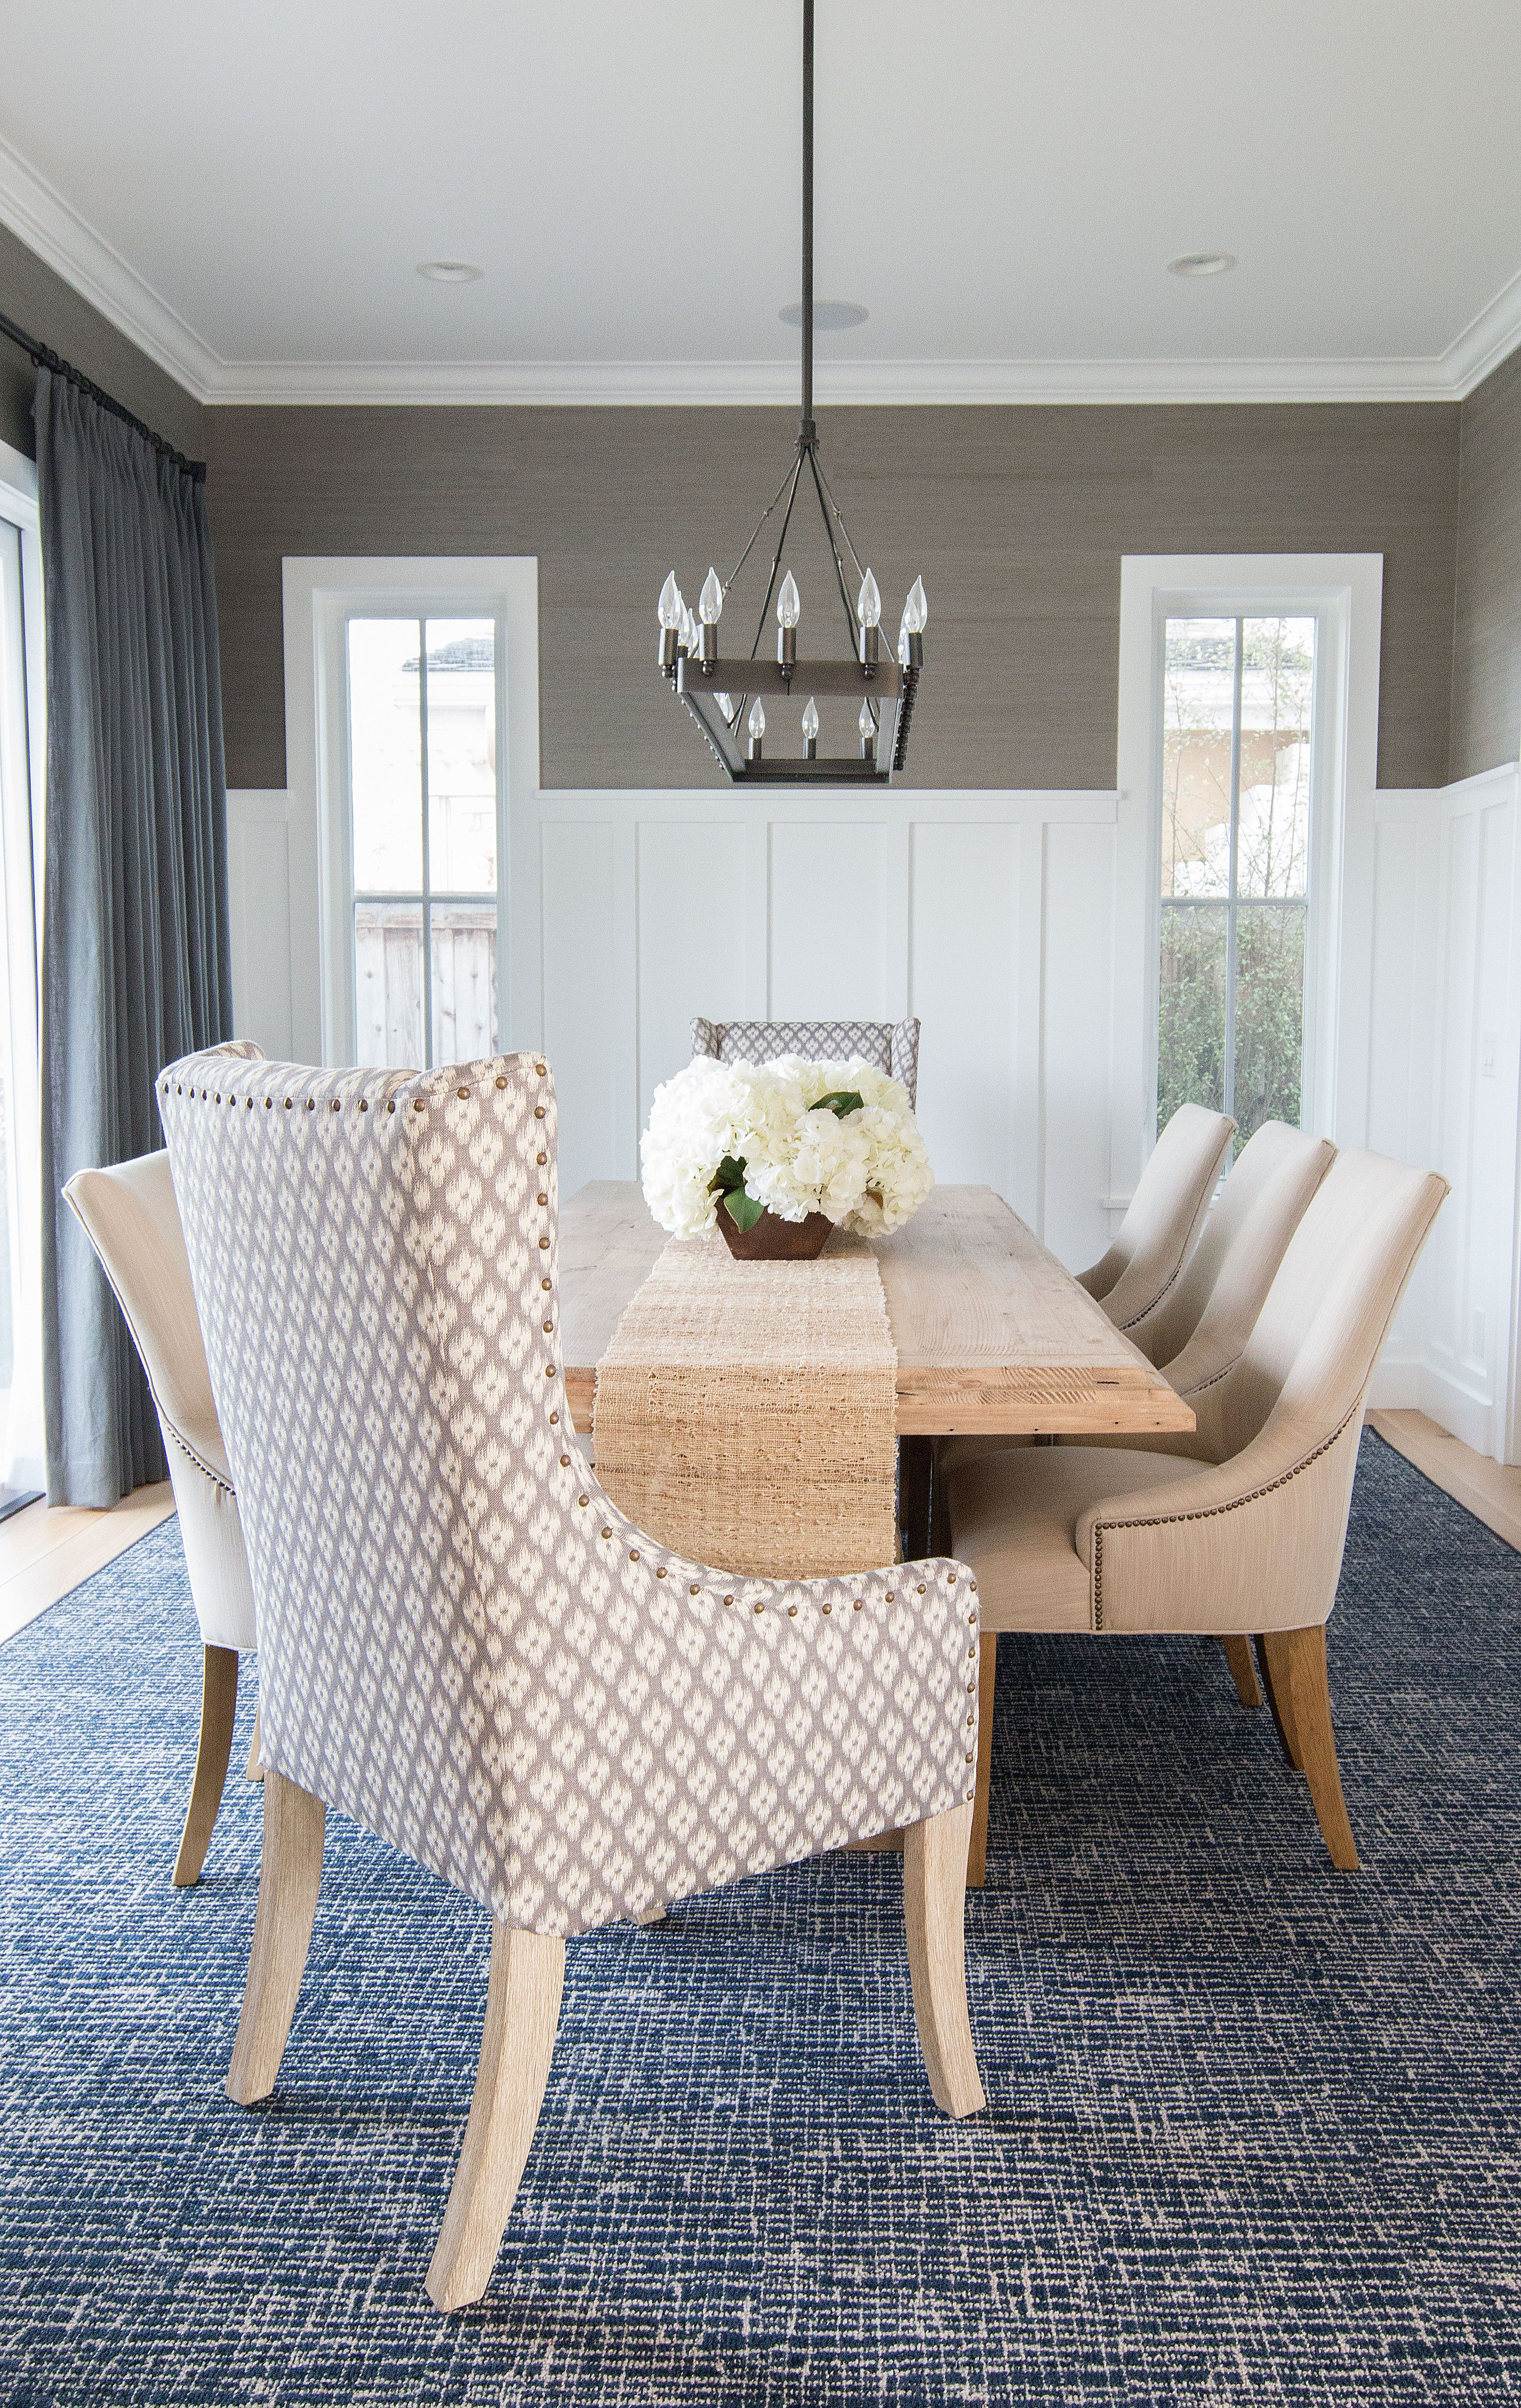 Wainscoting formal dining room - Project Newport Harbor Part Two Dining Room Wainscotingcontemporary